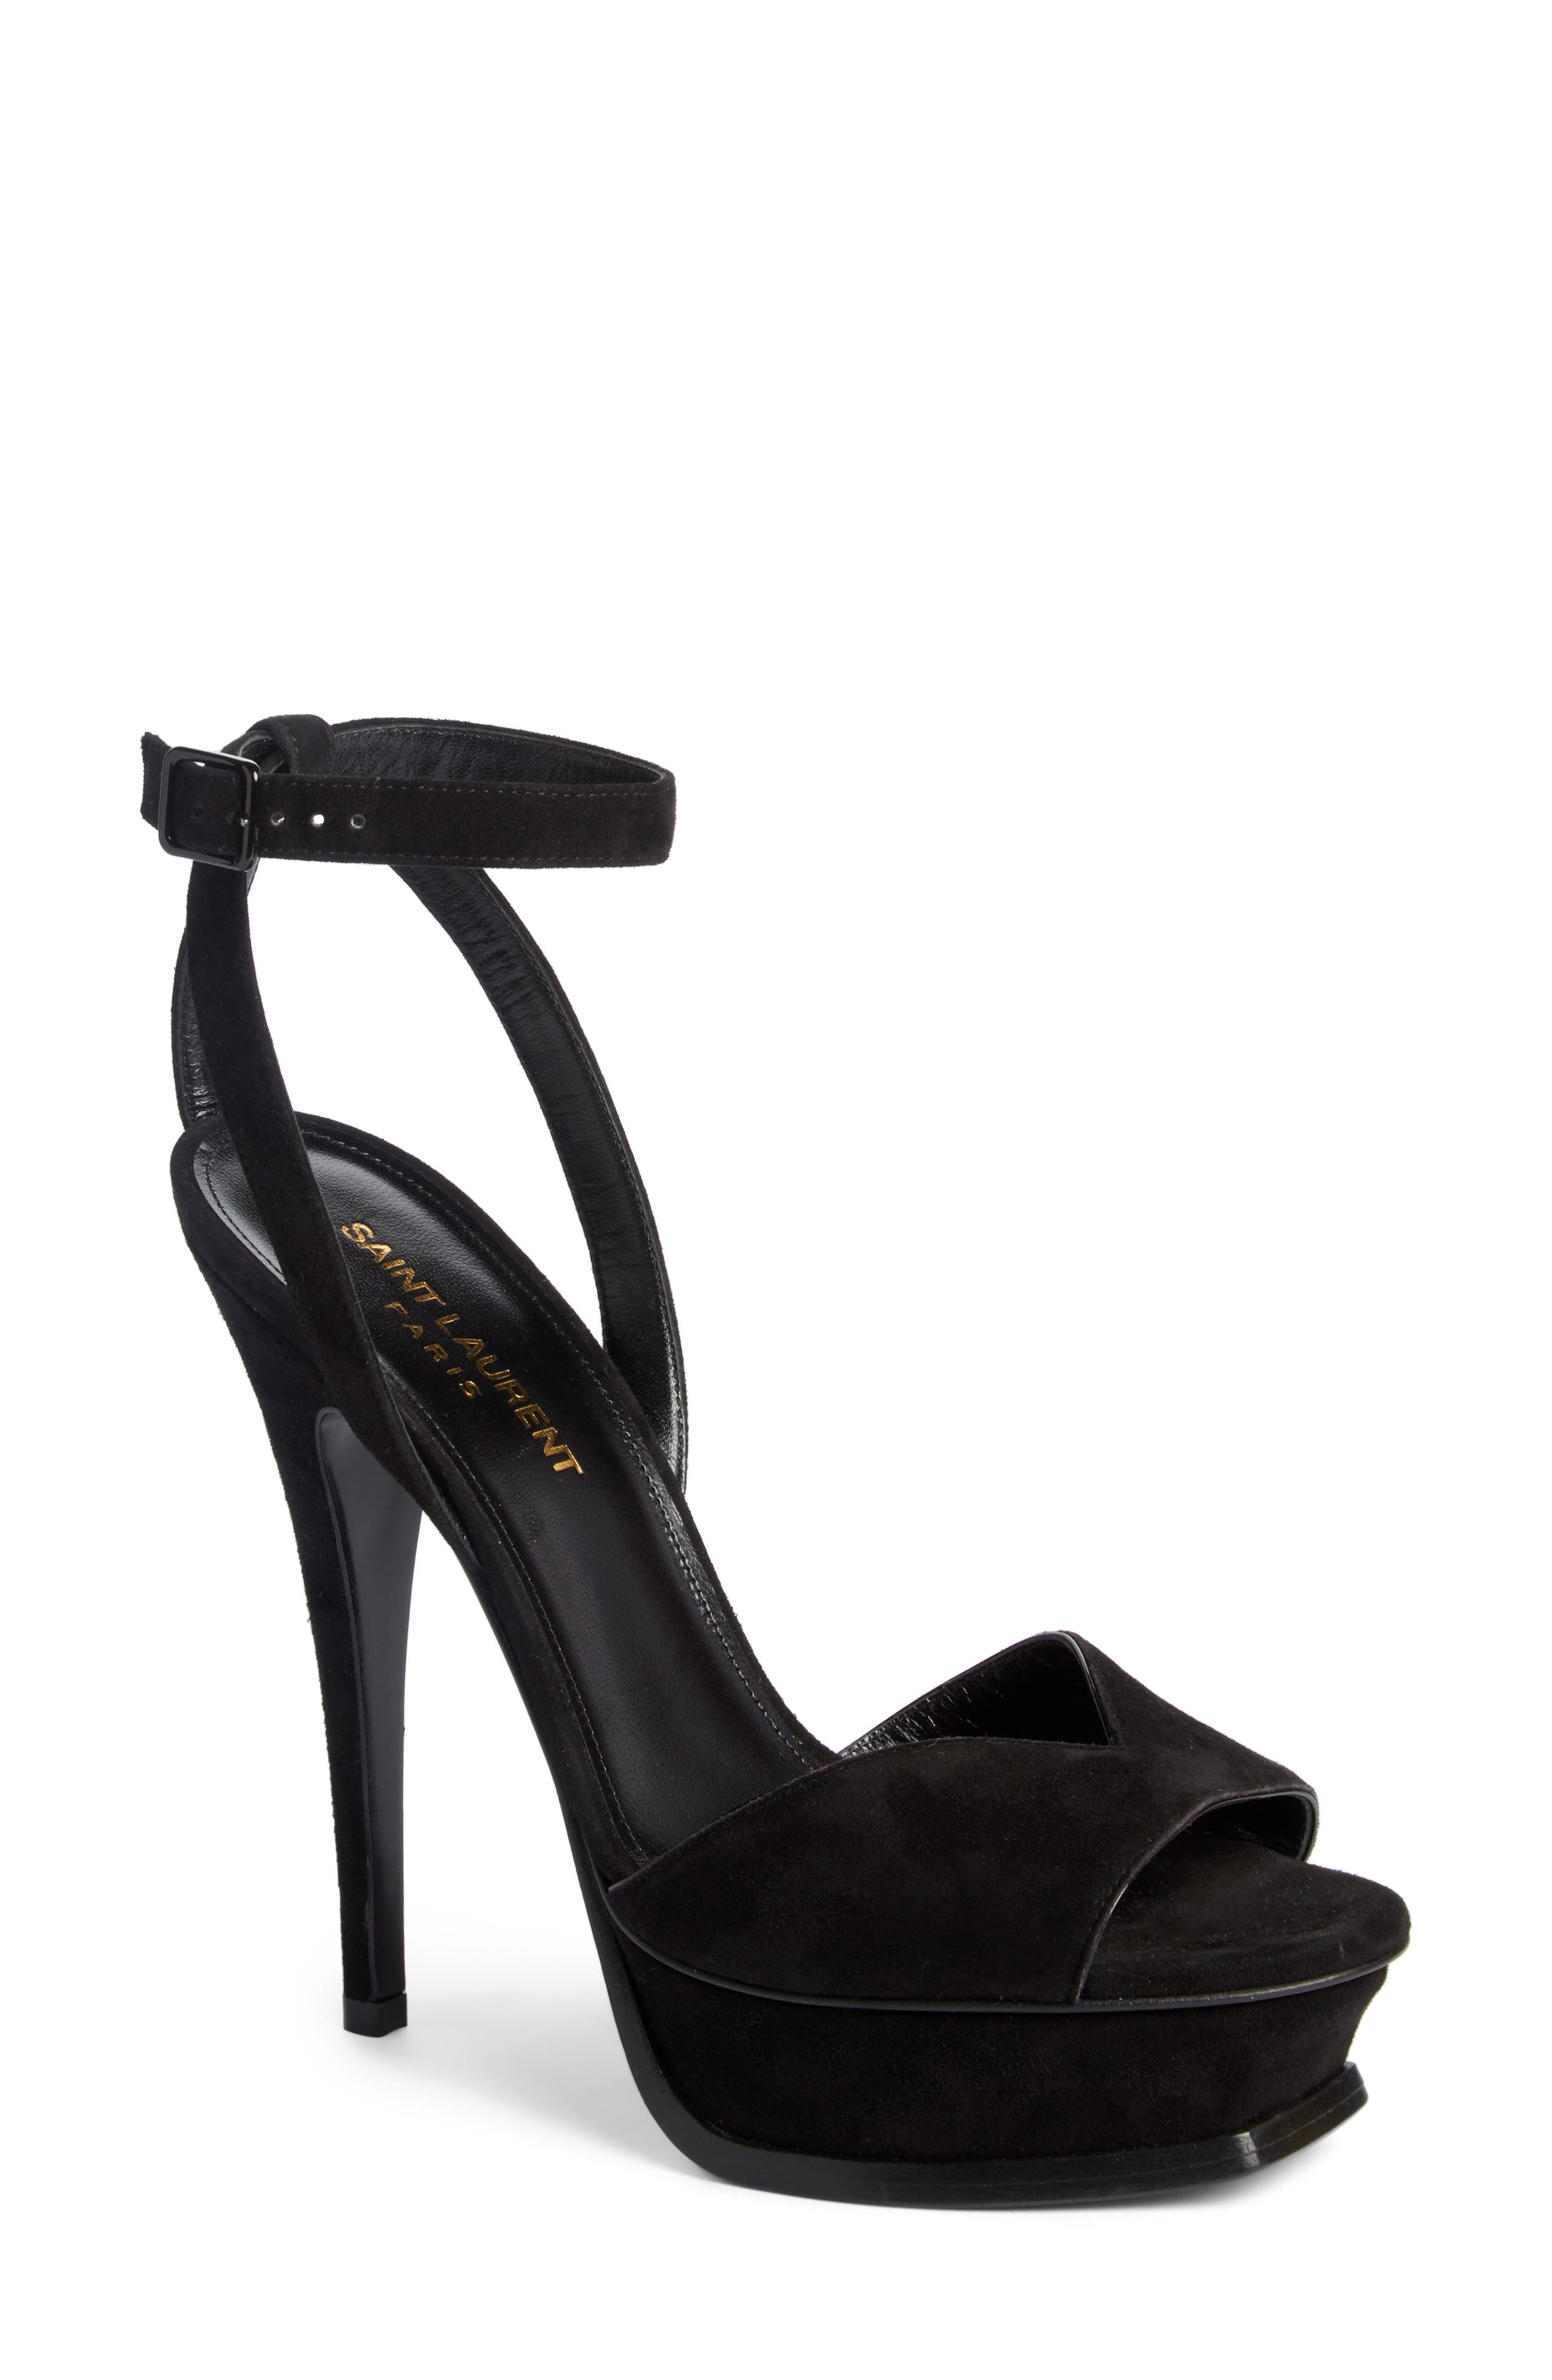 Tribute Platform Sandal,                         Main,                         color, BLACK